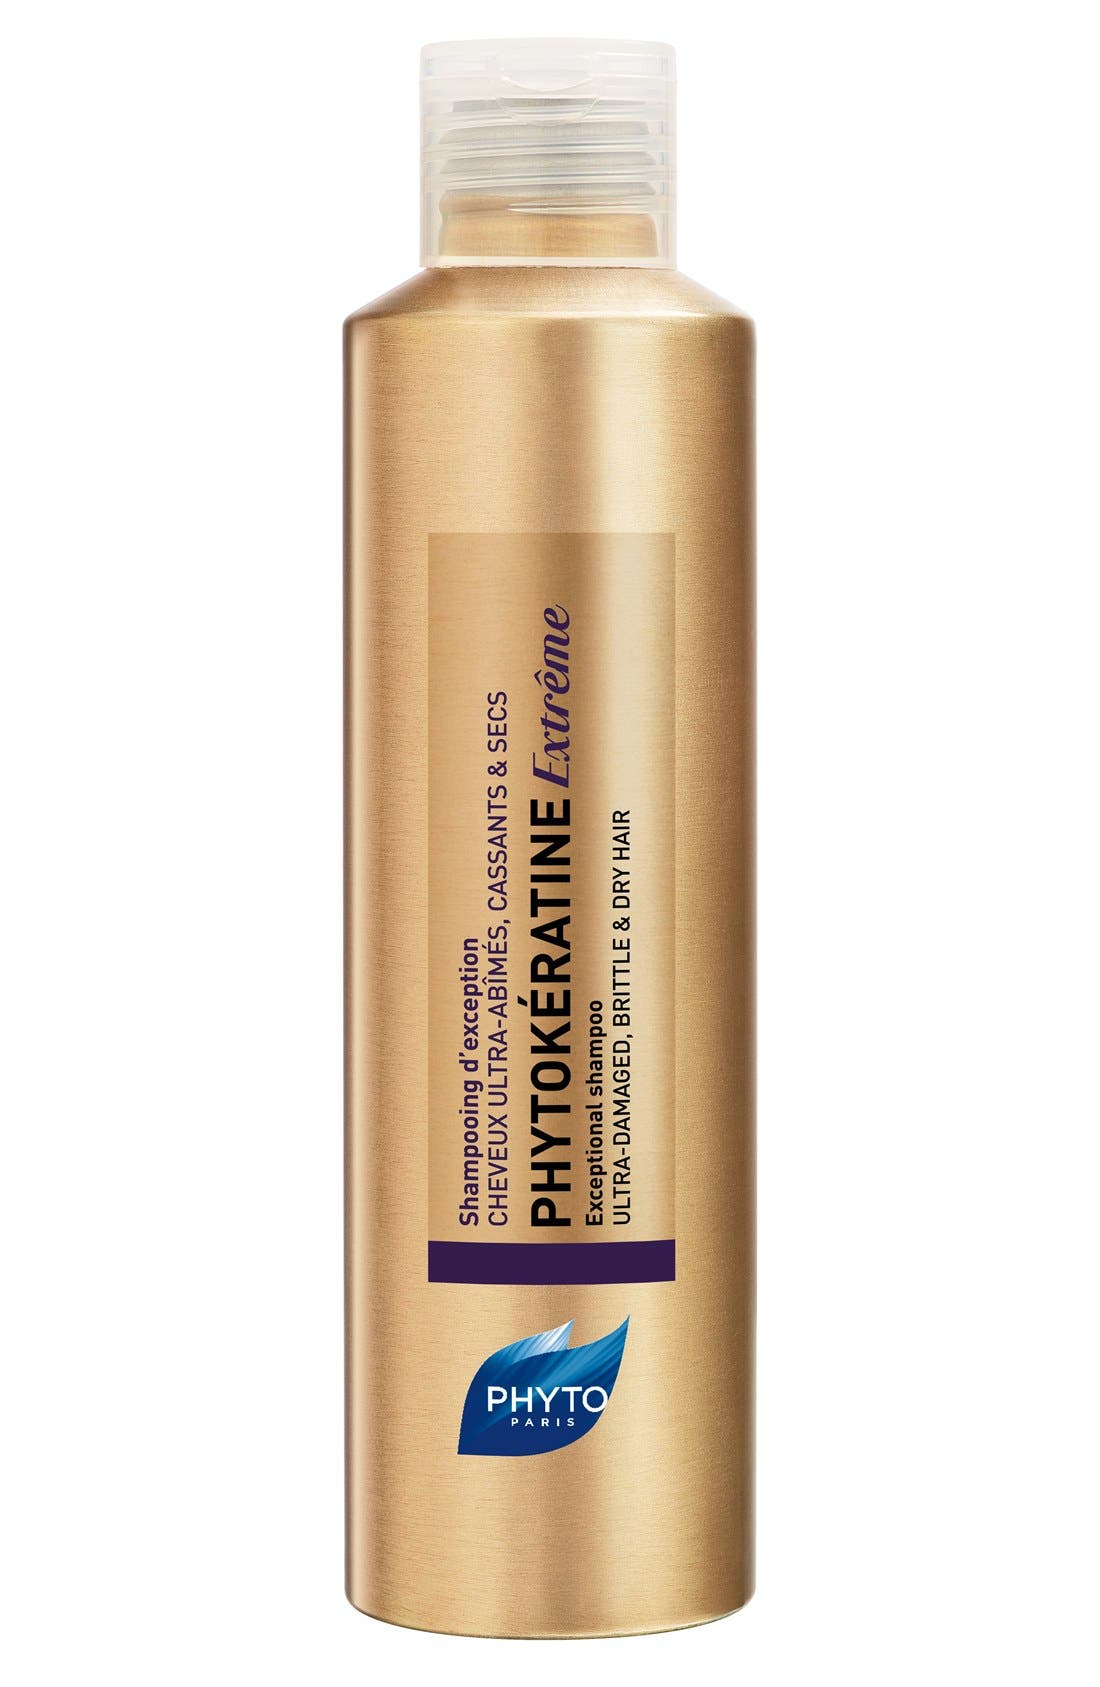 Phytokératine Extrême Exceptional Shampoo,                         Main,                         color, NO COLOR